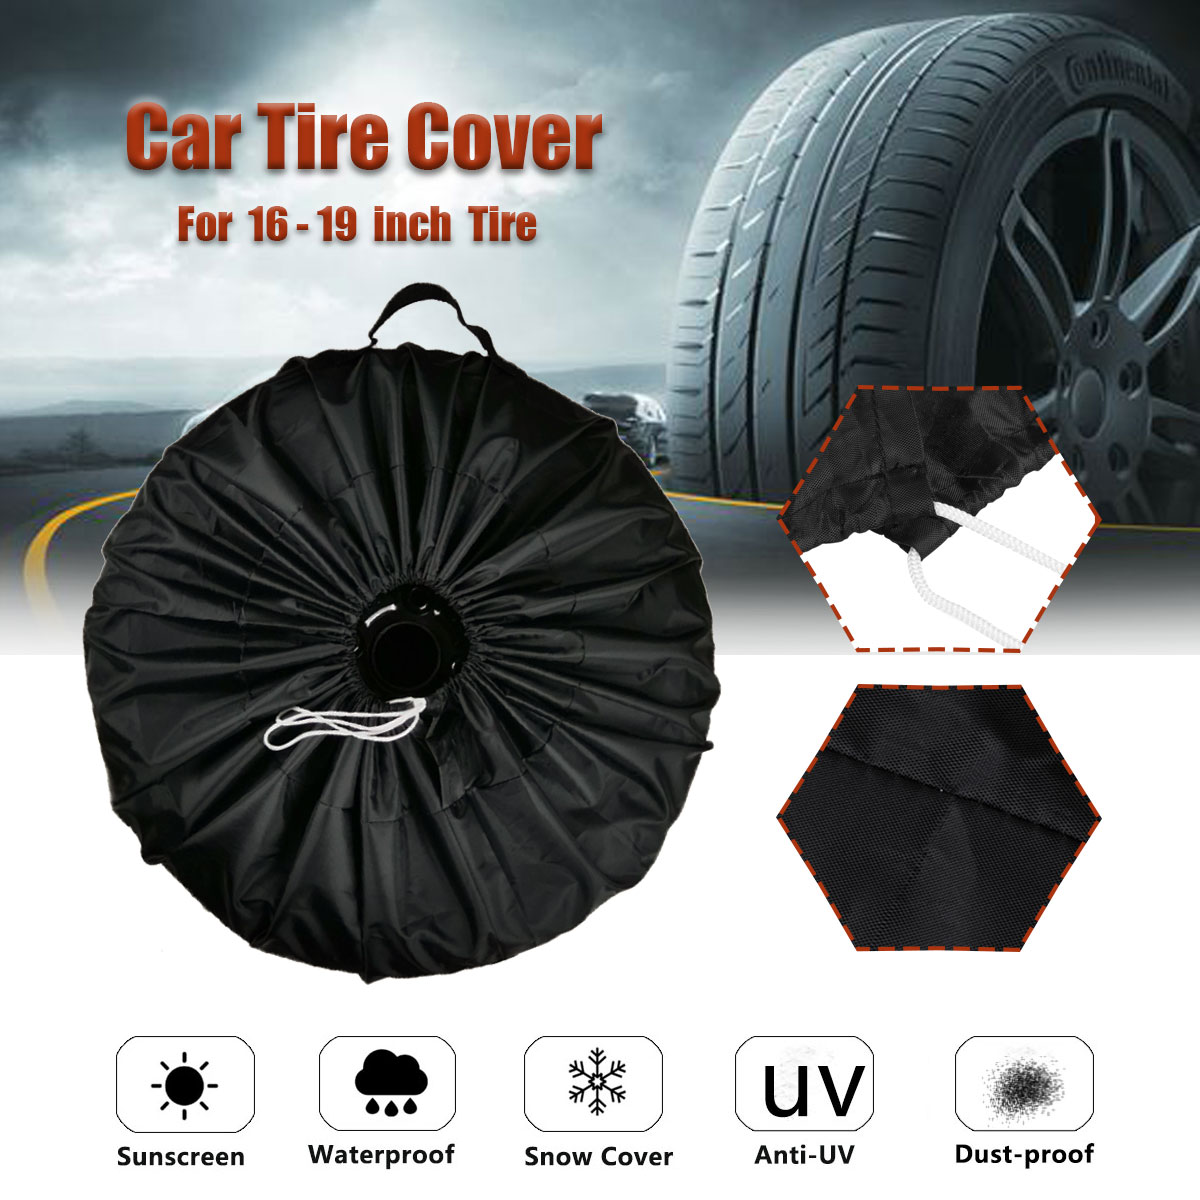 S/L Universal Car SUV Tire Cover Case Spare Wheel Covers Bag Polyester Tyre Spare Storage Cover For RV Motorhome